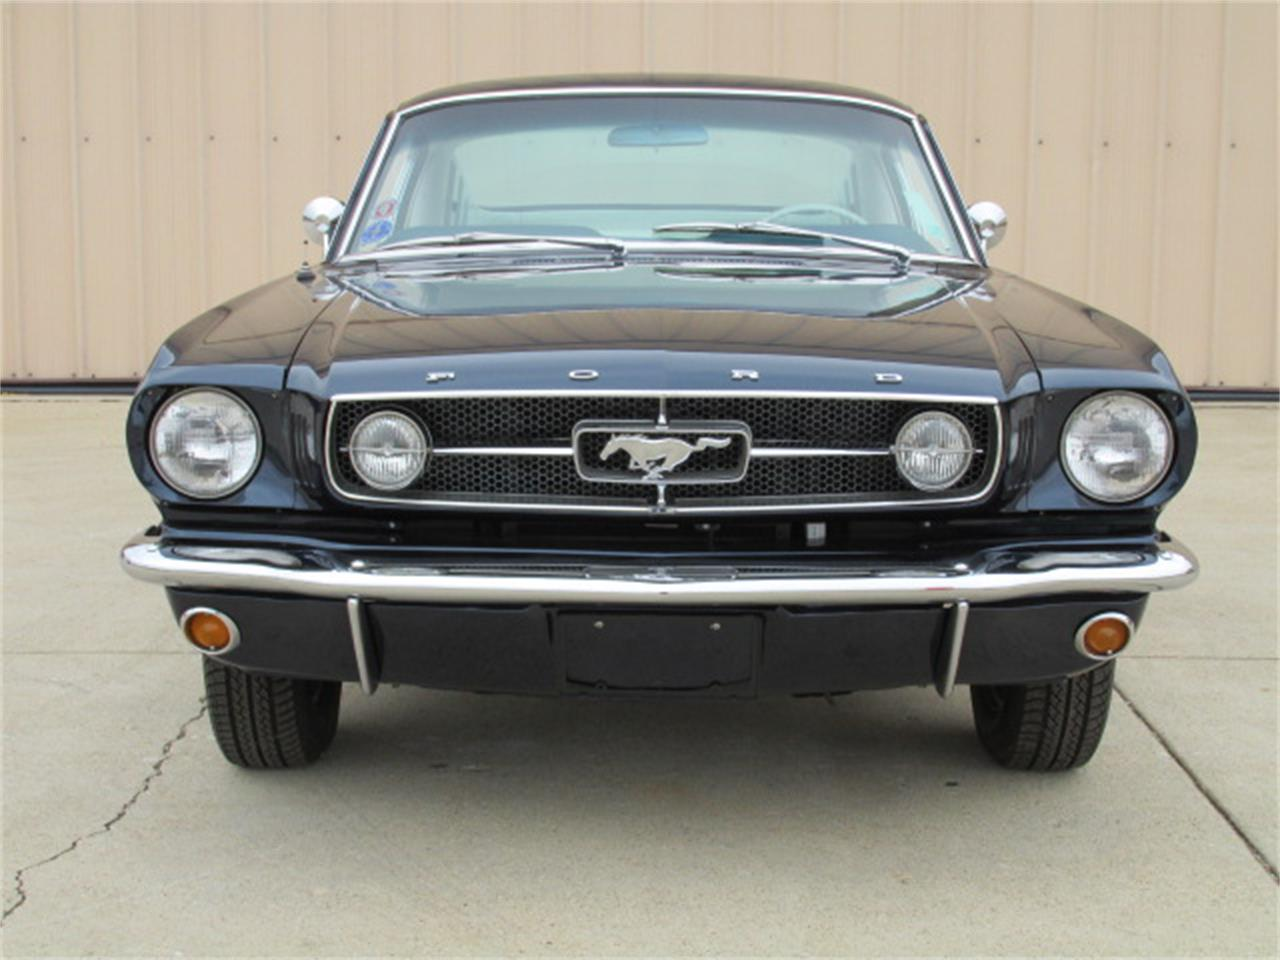 Large Picture of '65 Ford Mustang located in Illinois - $48,000.00 - P1IH